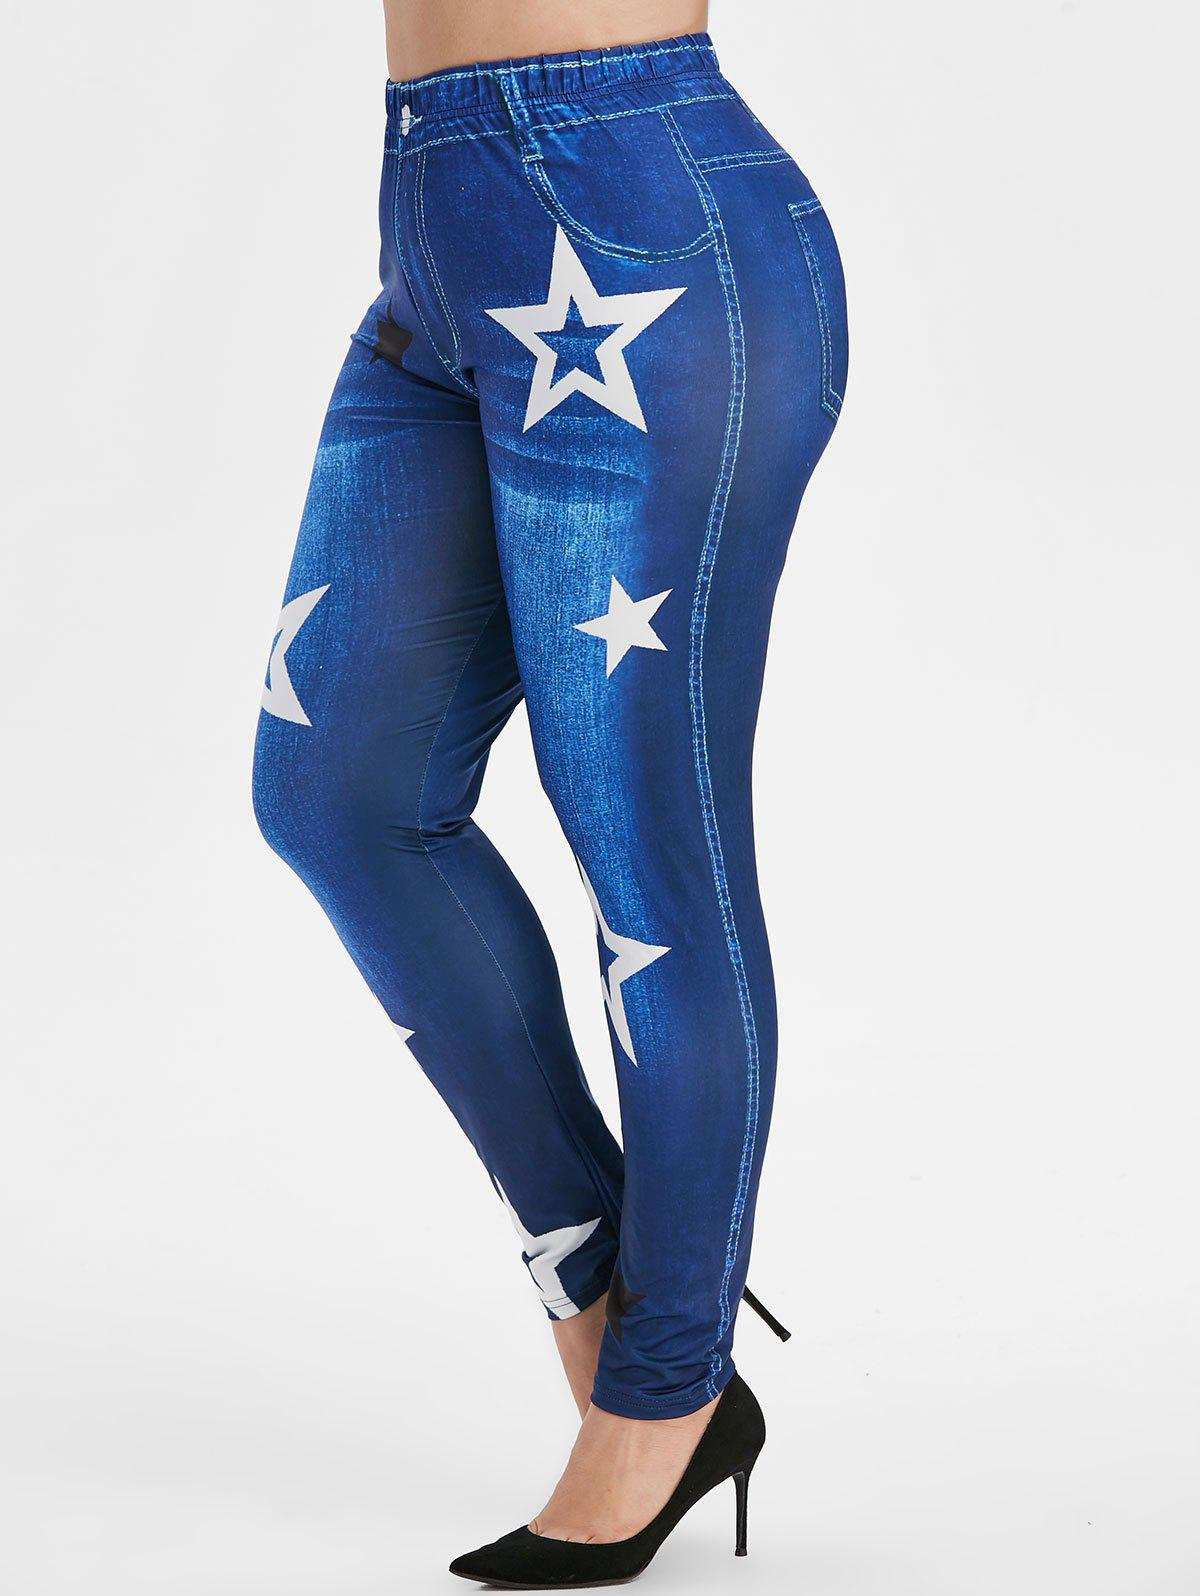 Contrast 3D Star High Waisted Pull On Plus Size Jeggings - DENIM DARK BLUE 5X